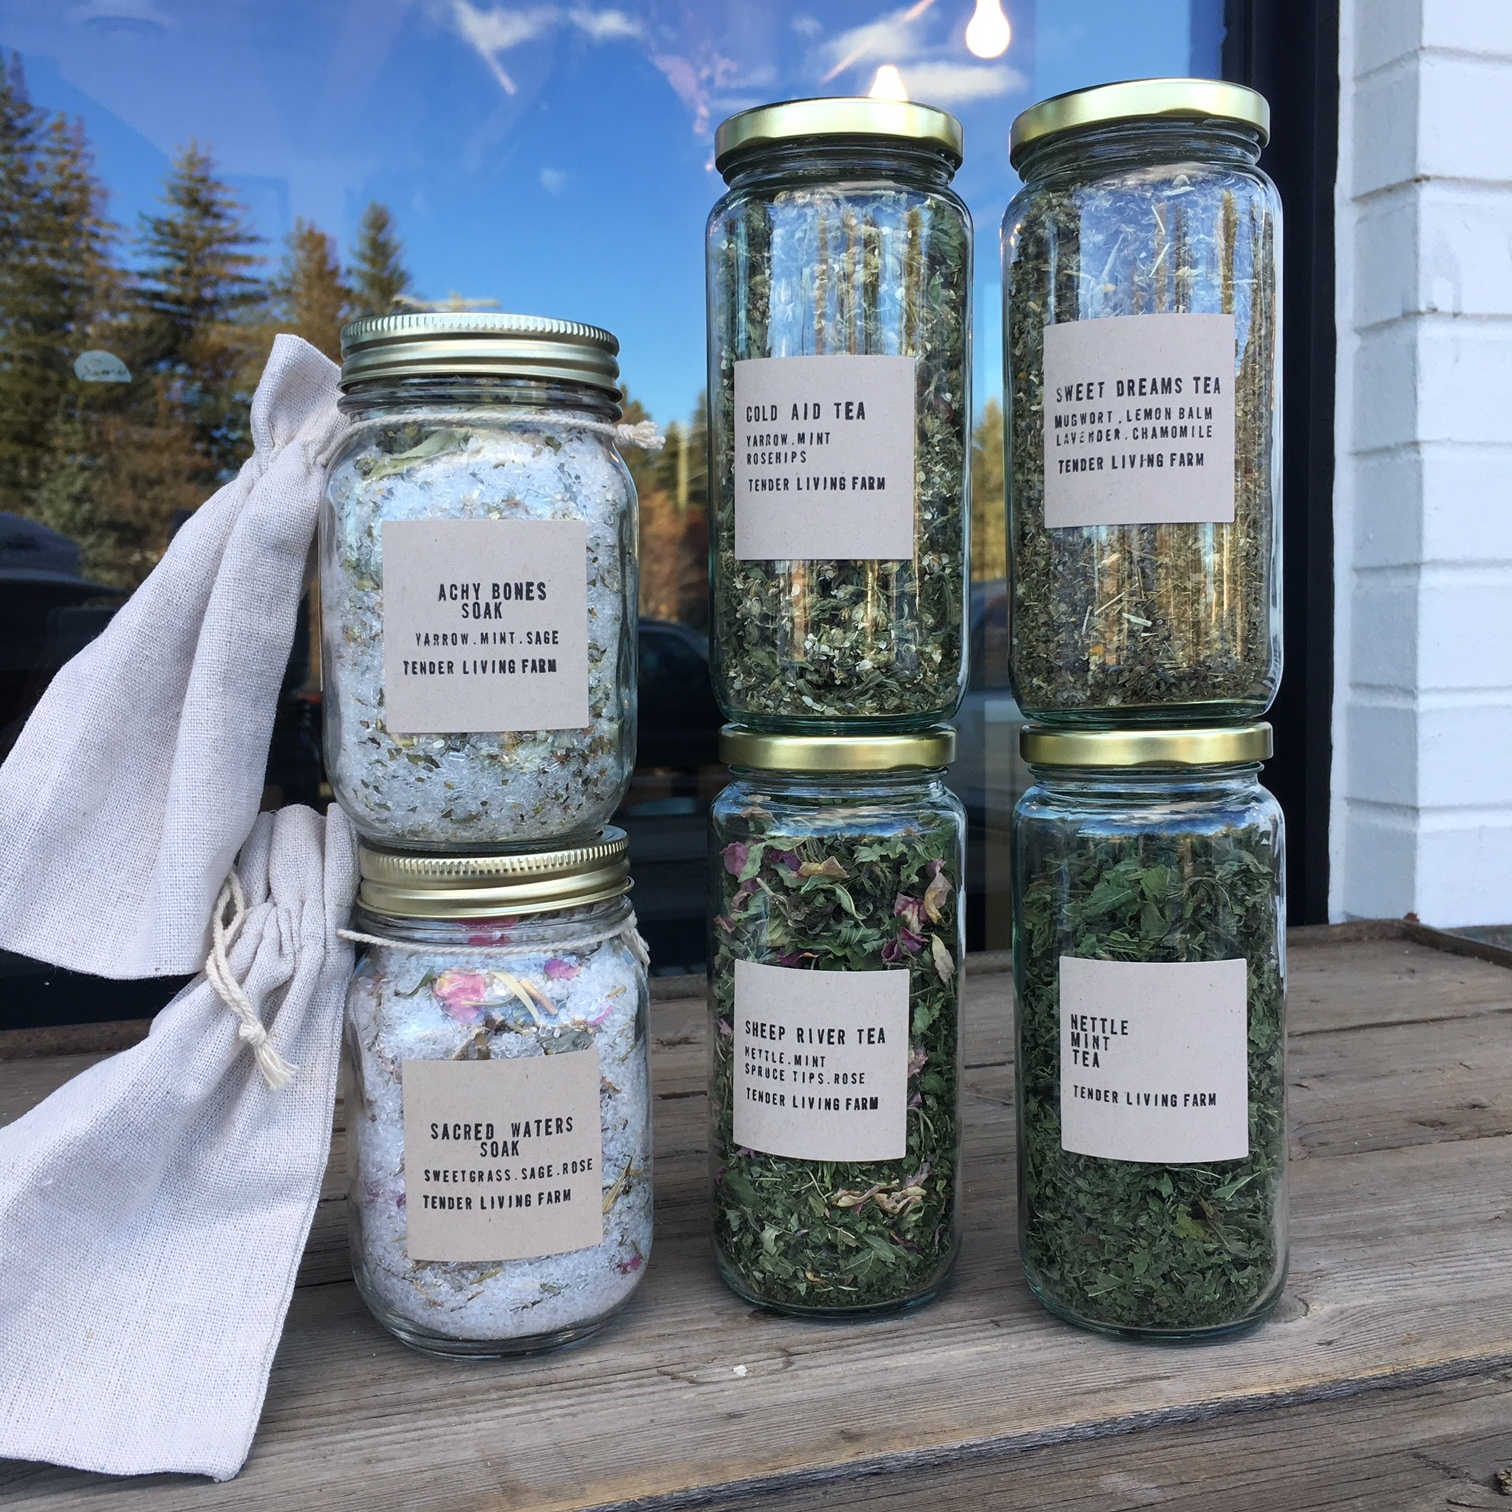 Tender Living Farm is a half acre off-grid homestead nestled in the foothills of Alberta. Focusing on all things made, grown, and foraged, Isis Velkova-Andrus has created a beautiful line of herbal teas and bath salts just in time for the winter months.